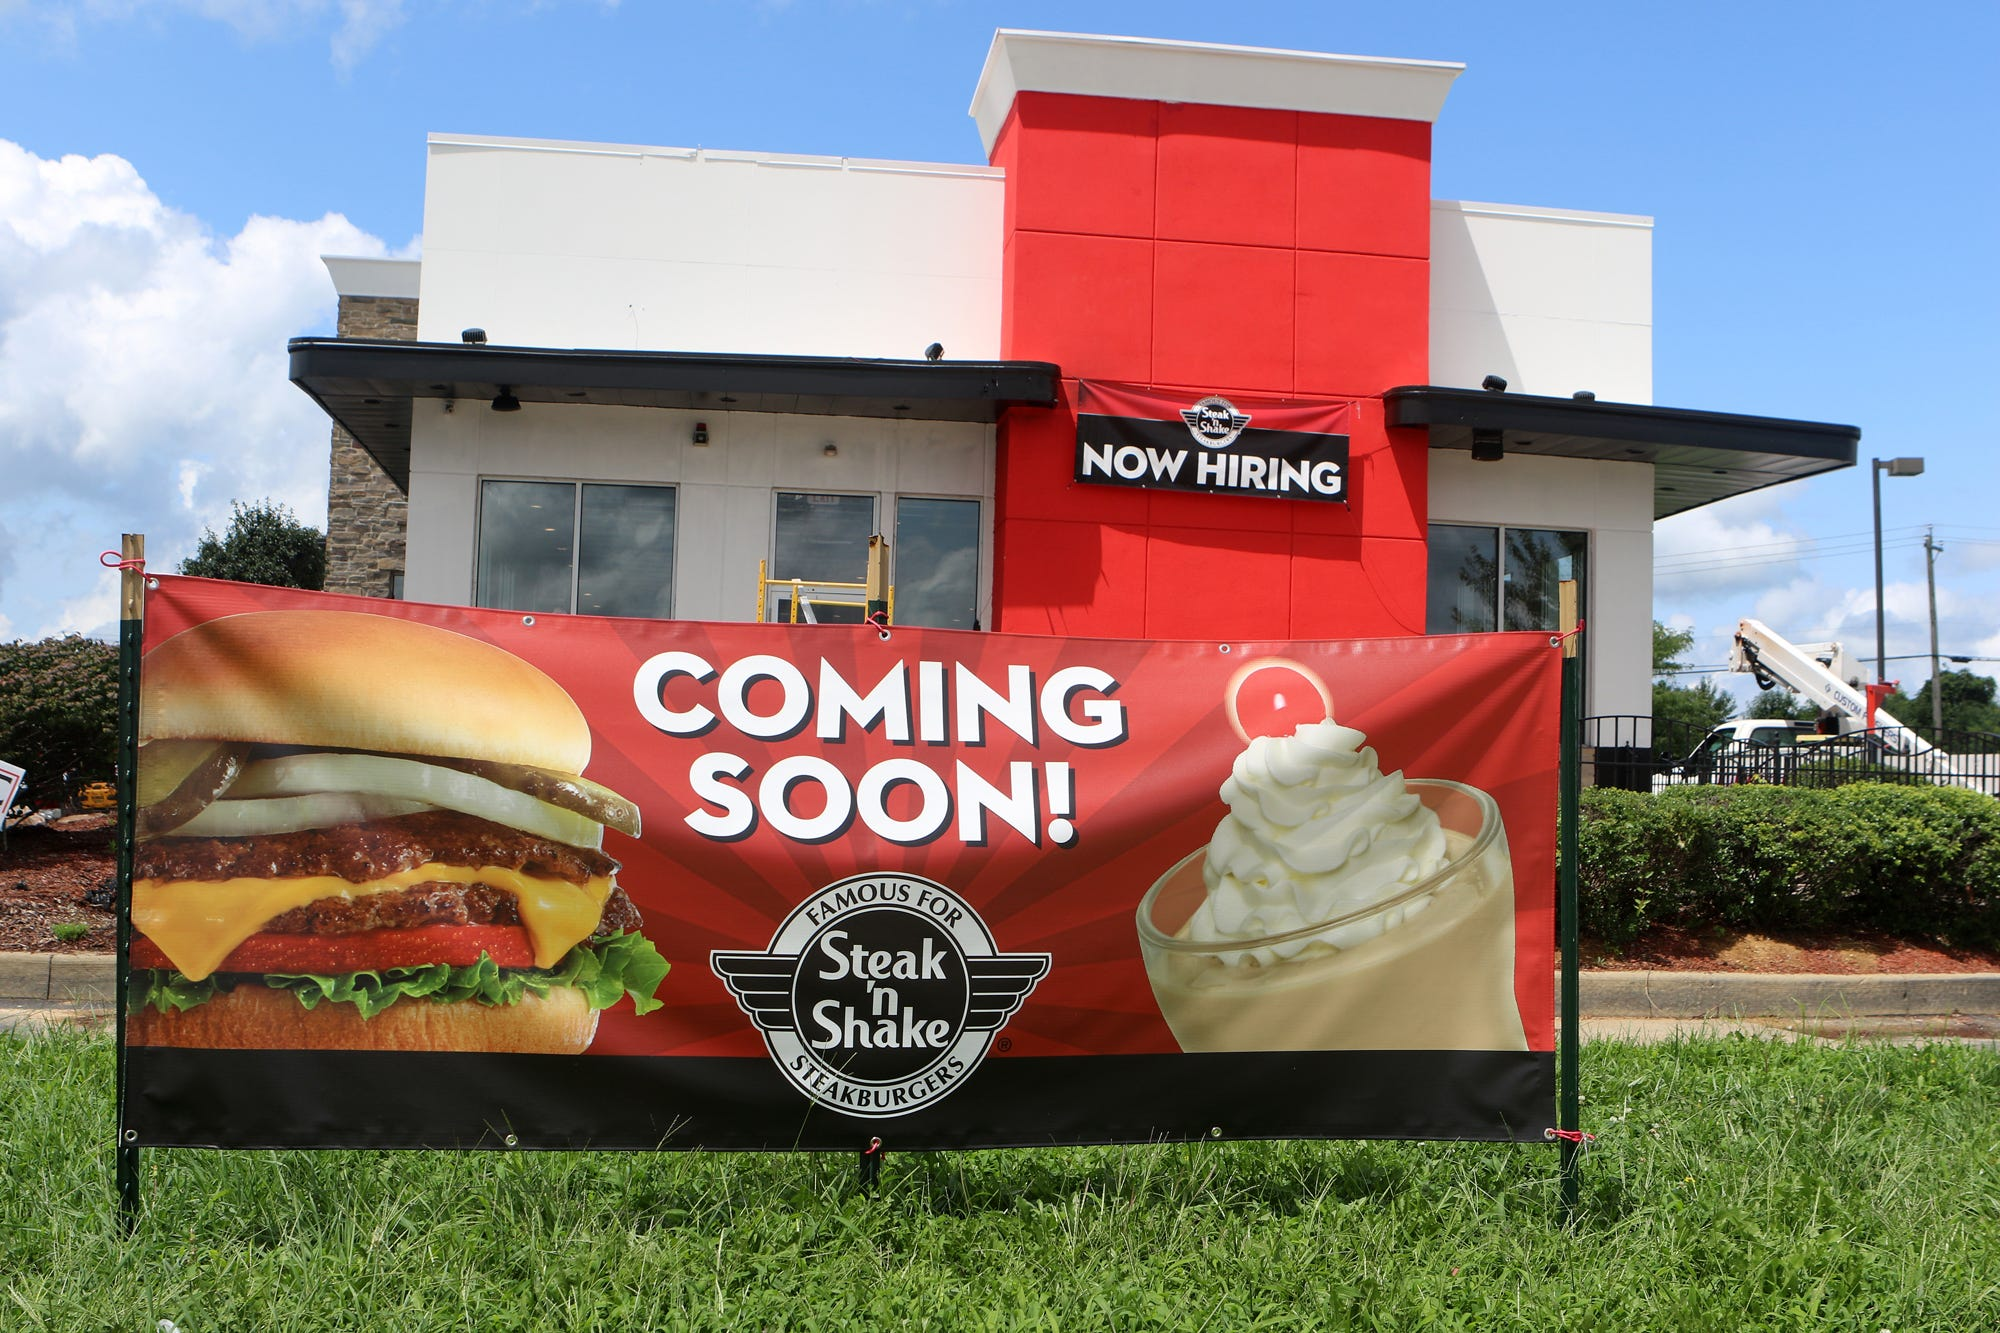 Anticipated opening of Middletown Steak 'n Shake getting a lot of attention   Delaware Online